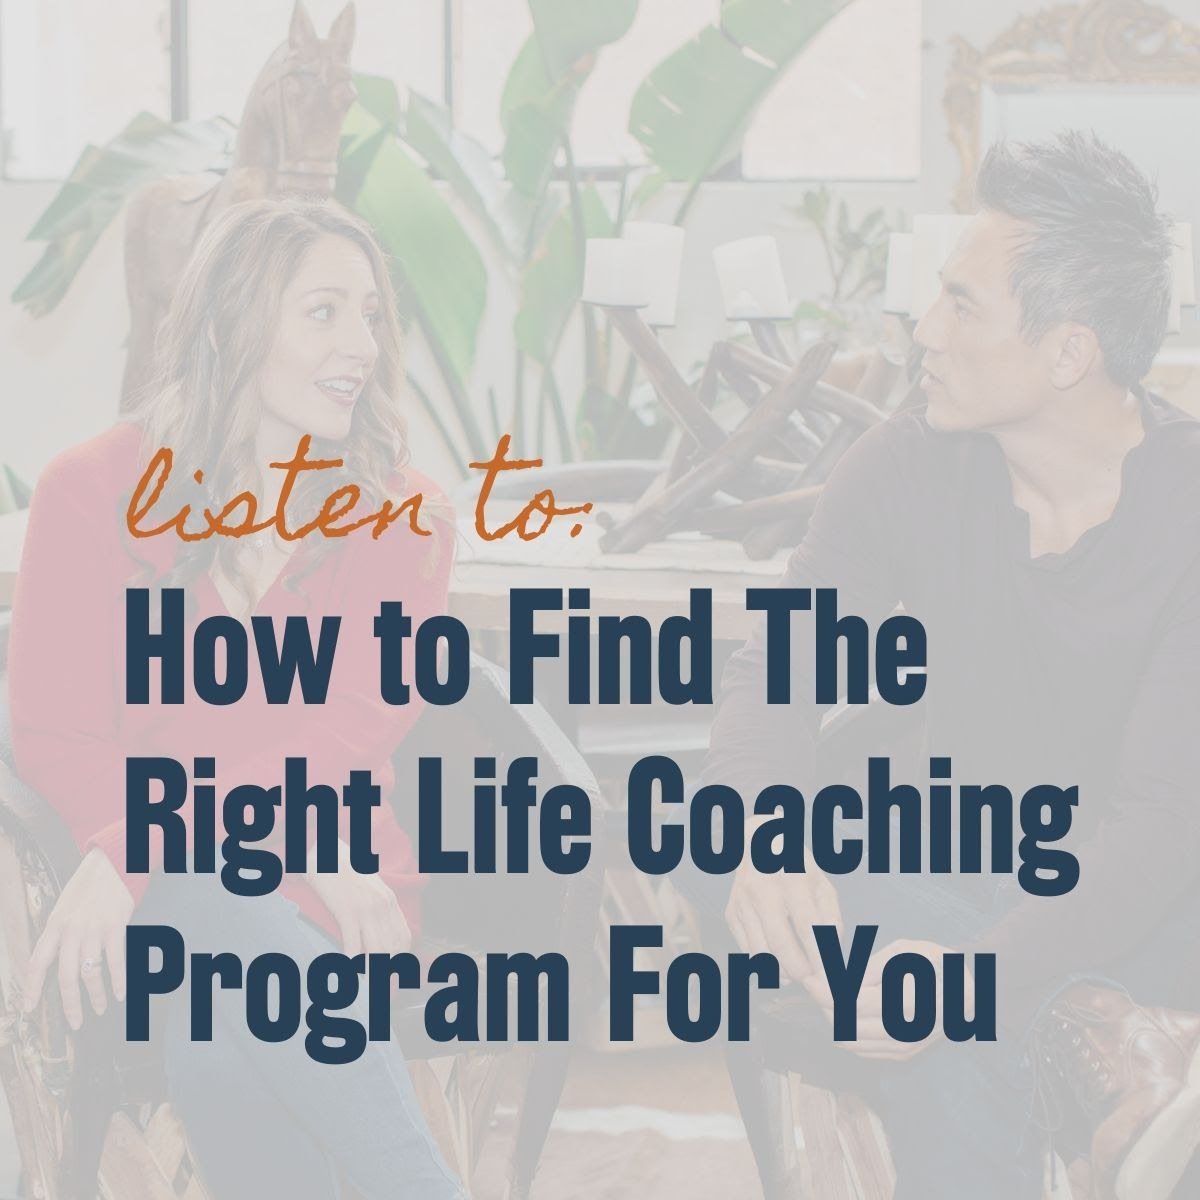 Listen to: How to Find the Right Life Coaching For You with JRNI Coaching Co-founders Noelle Cordeaux and John Kim in the background